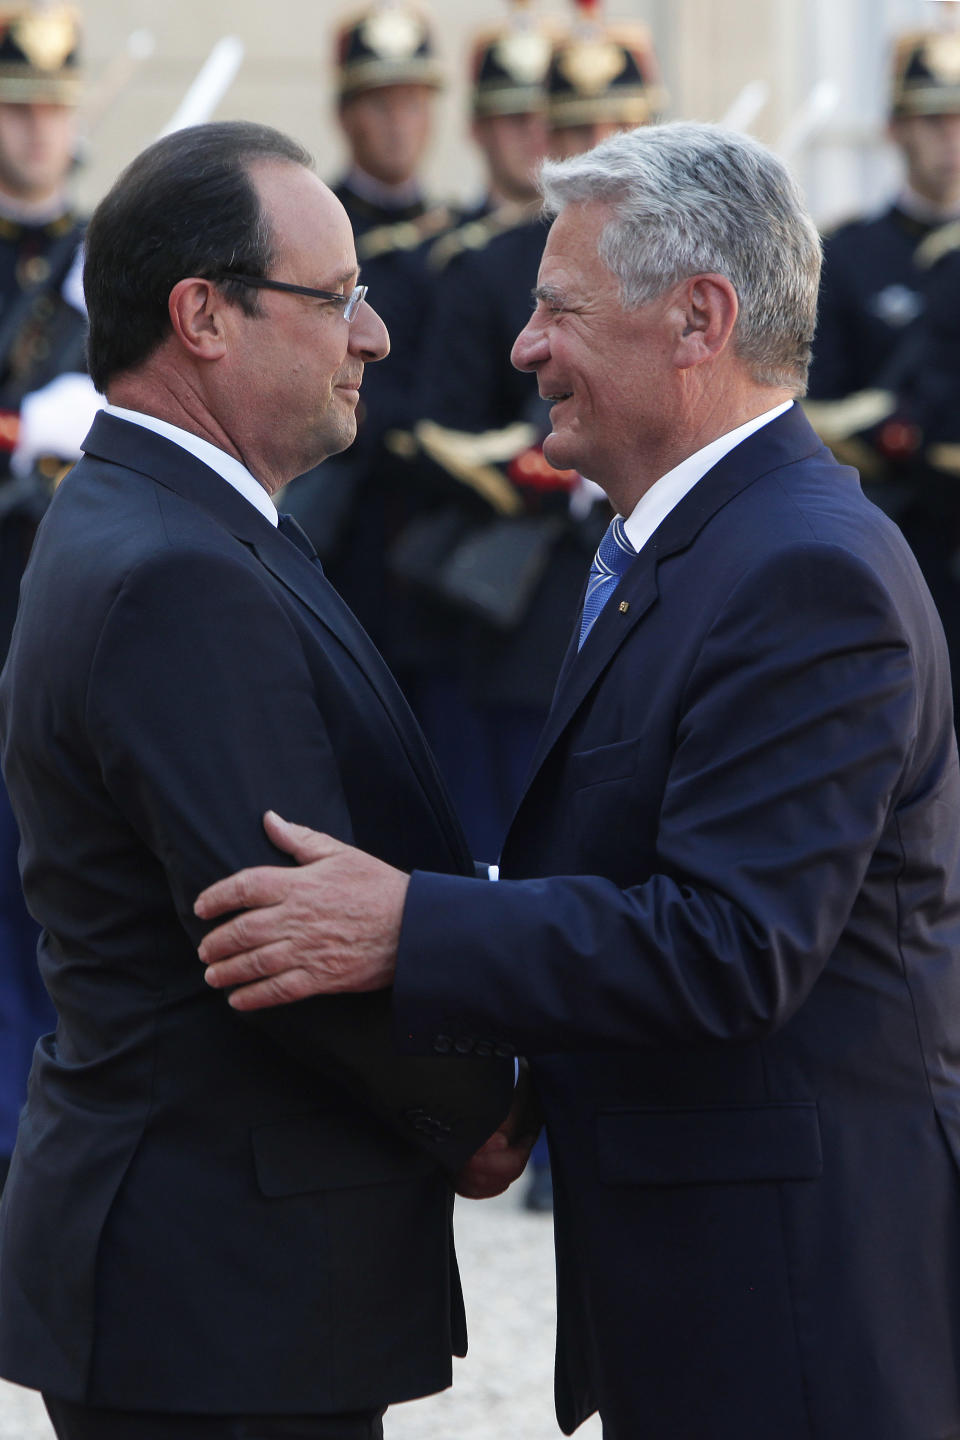 France's President Francois Hollande, left, hugs German President Joachim Gauck, prior to their talks at the Elysee Palace, in Paris, Tuesday, Sept. 3, 2013. The German head of state is in France for a three-day state visit. (AP Photo/Thibault Camus)